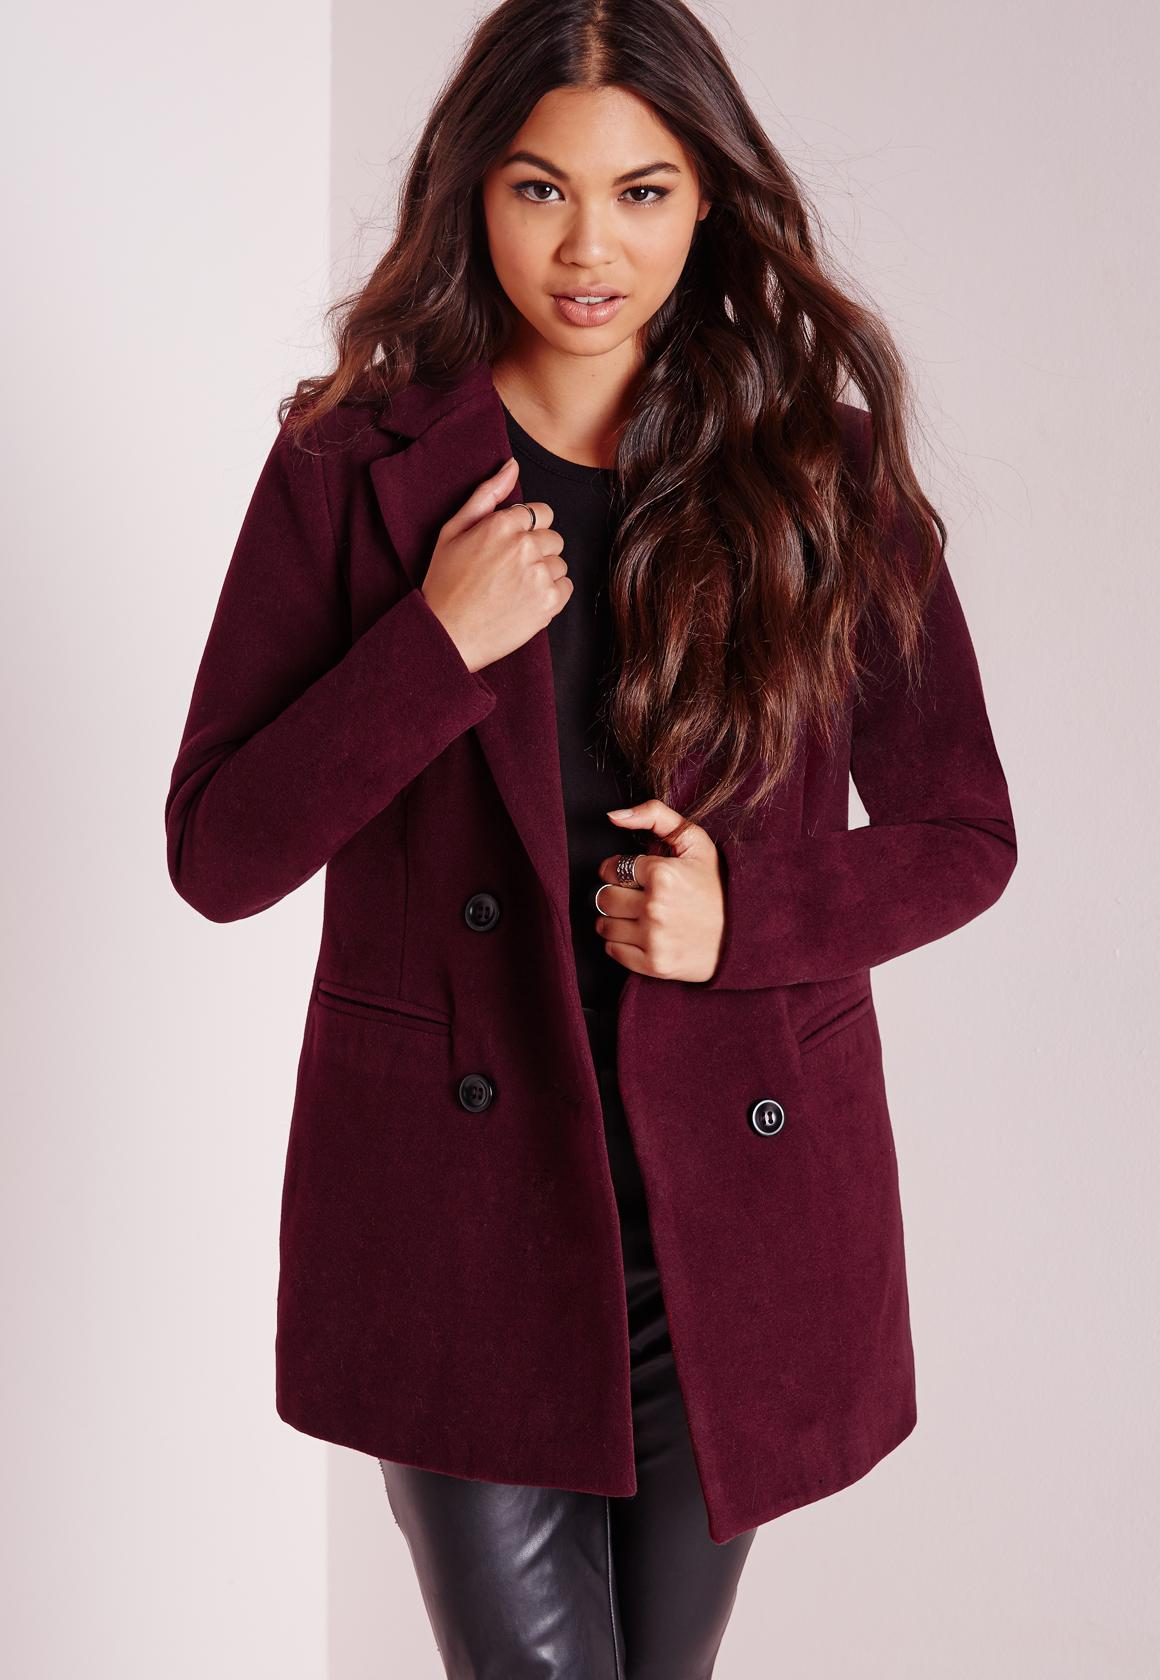 Double Breasted Tailored Wool Coat Burgundy | Missguided